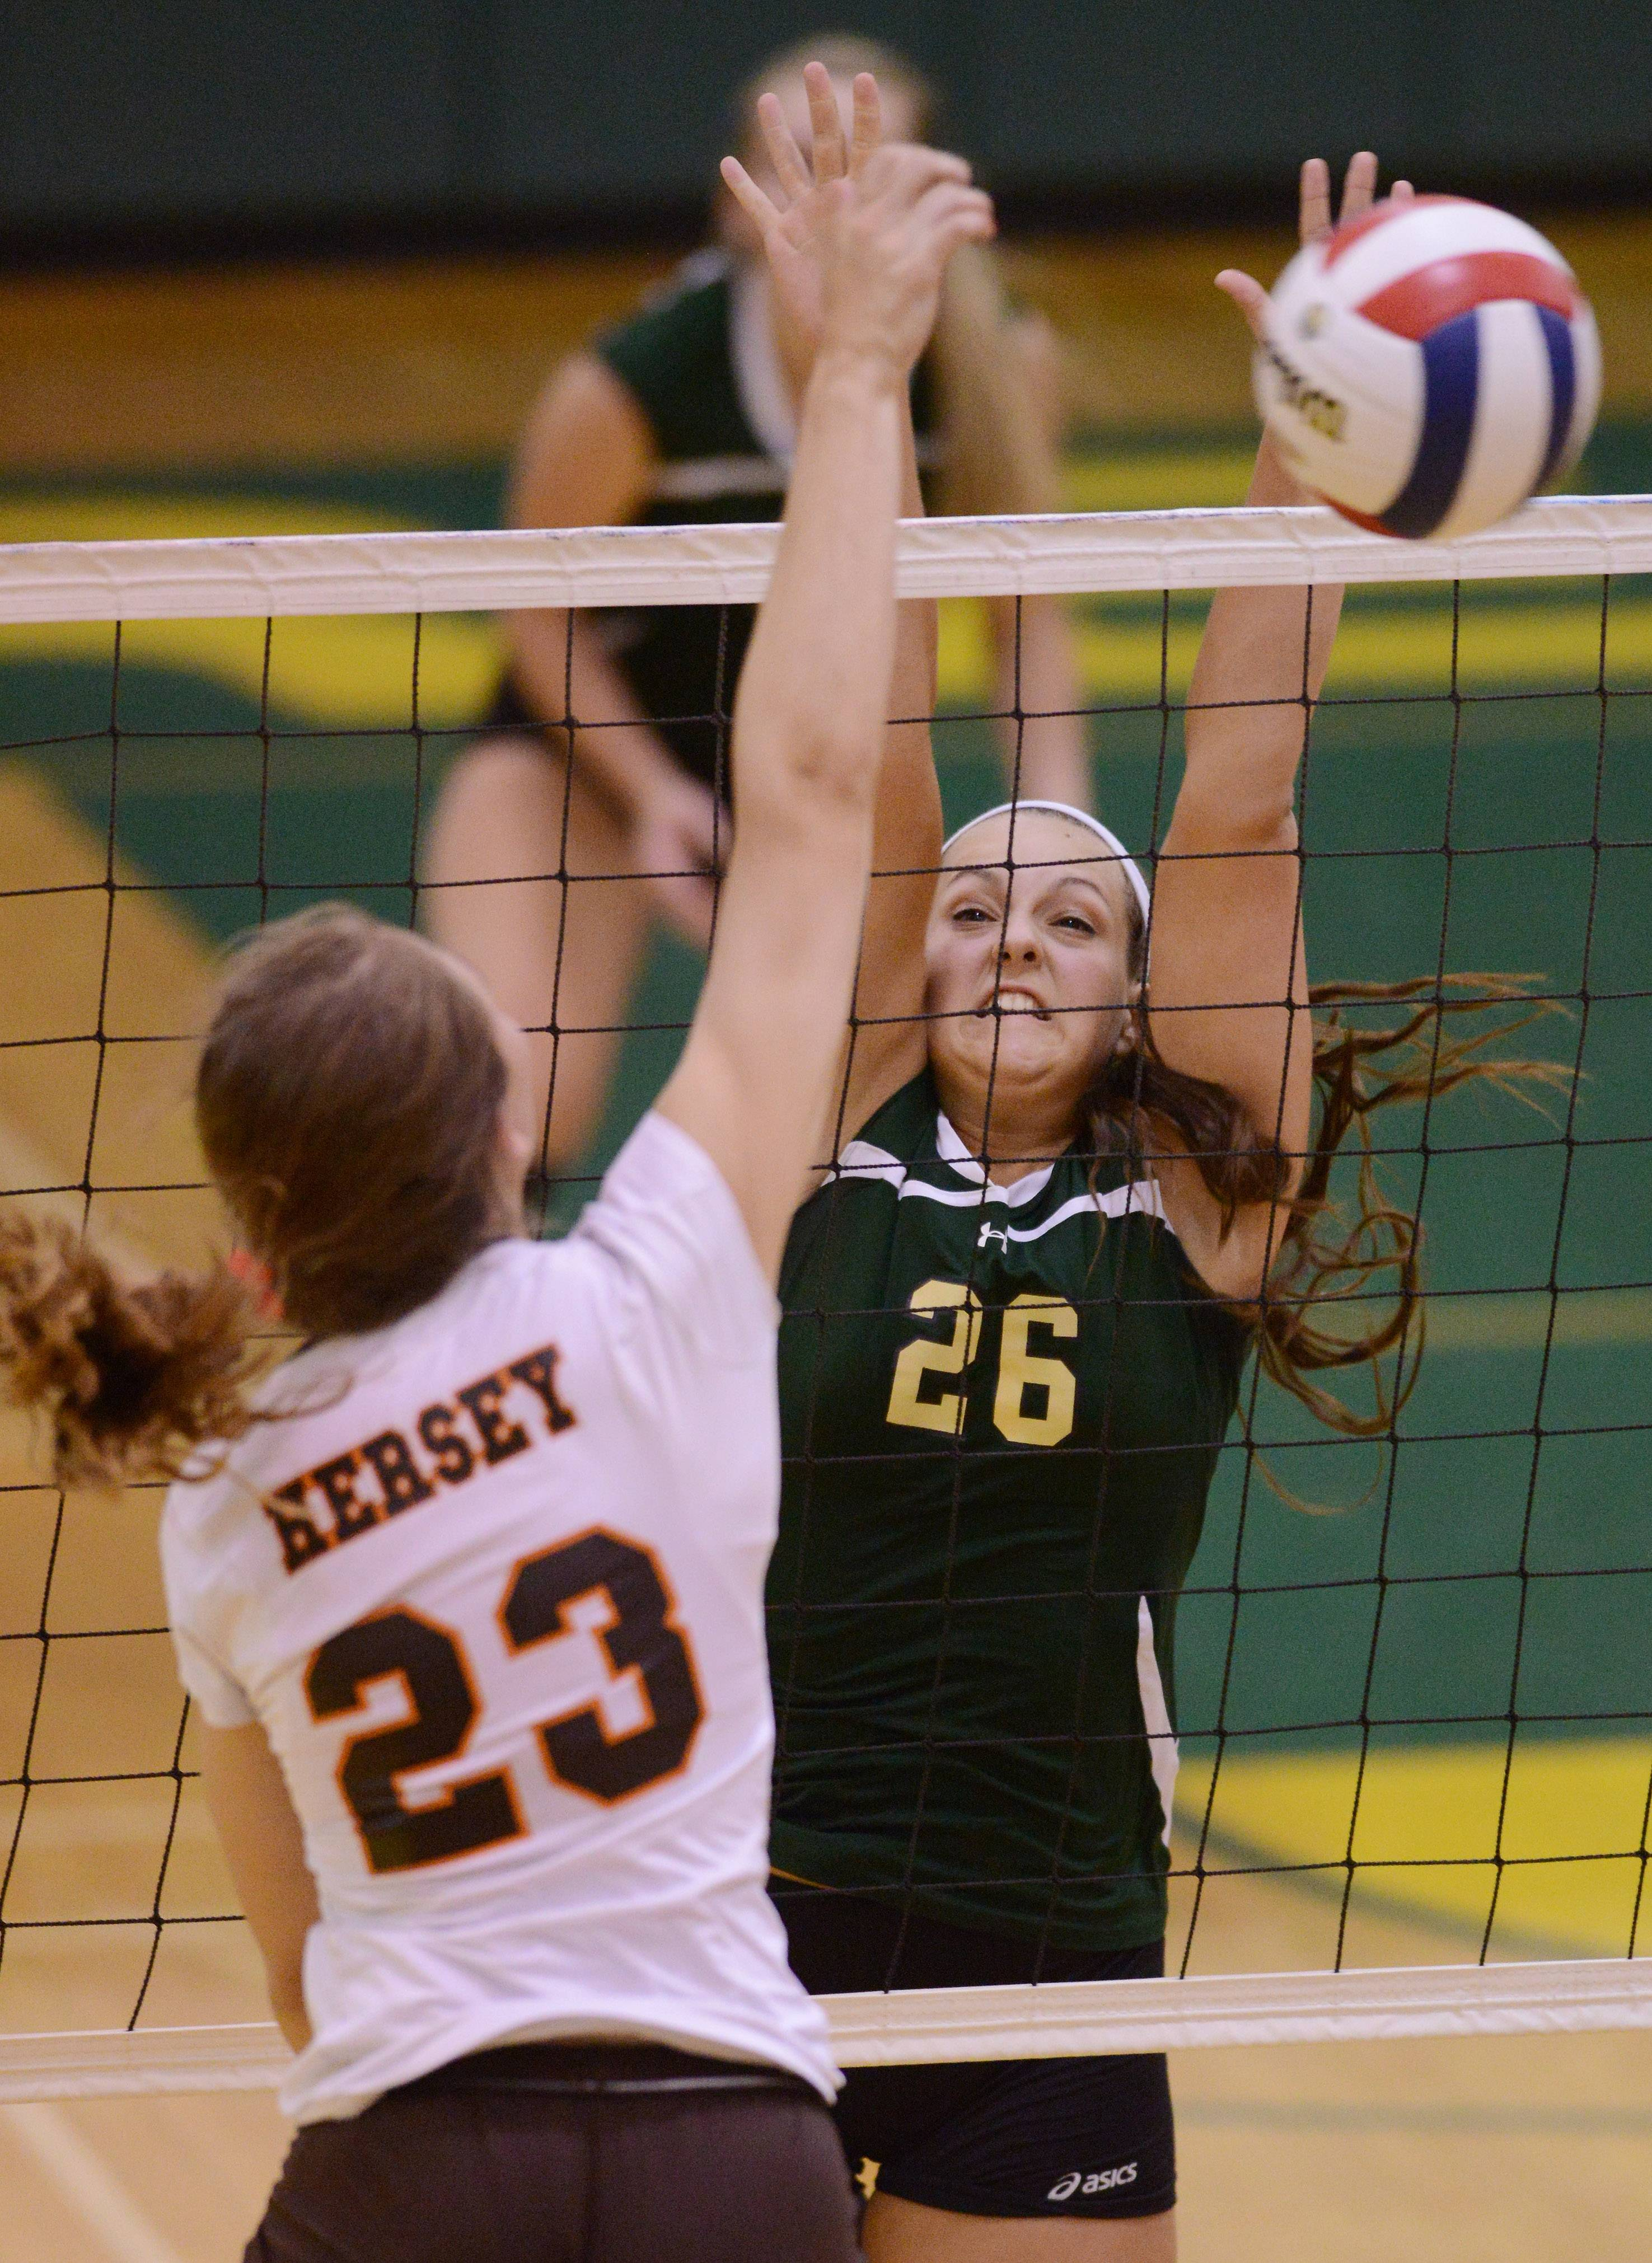 Fremd's Anna Bielinski tries to block a ball hit by Hersey's Liz Fuerst during Tuesday's volleyball match in Palatine.